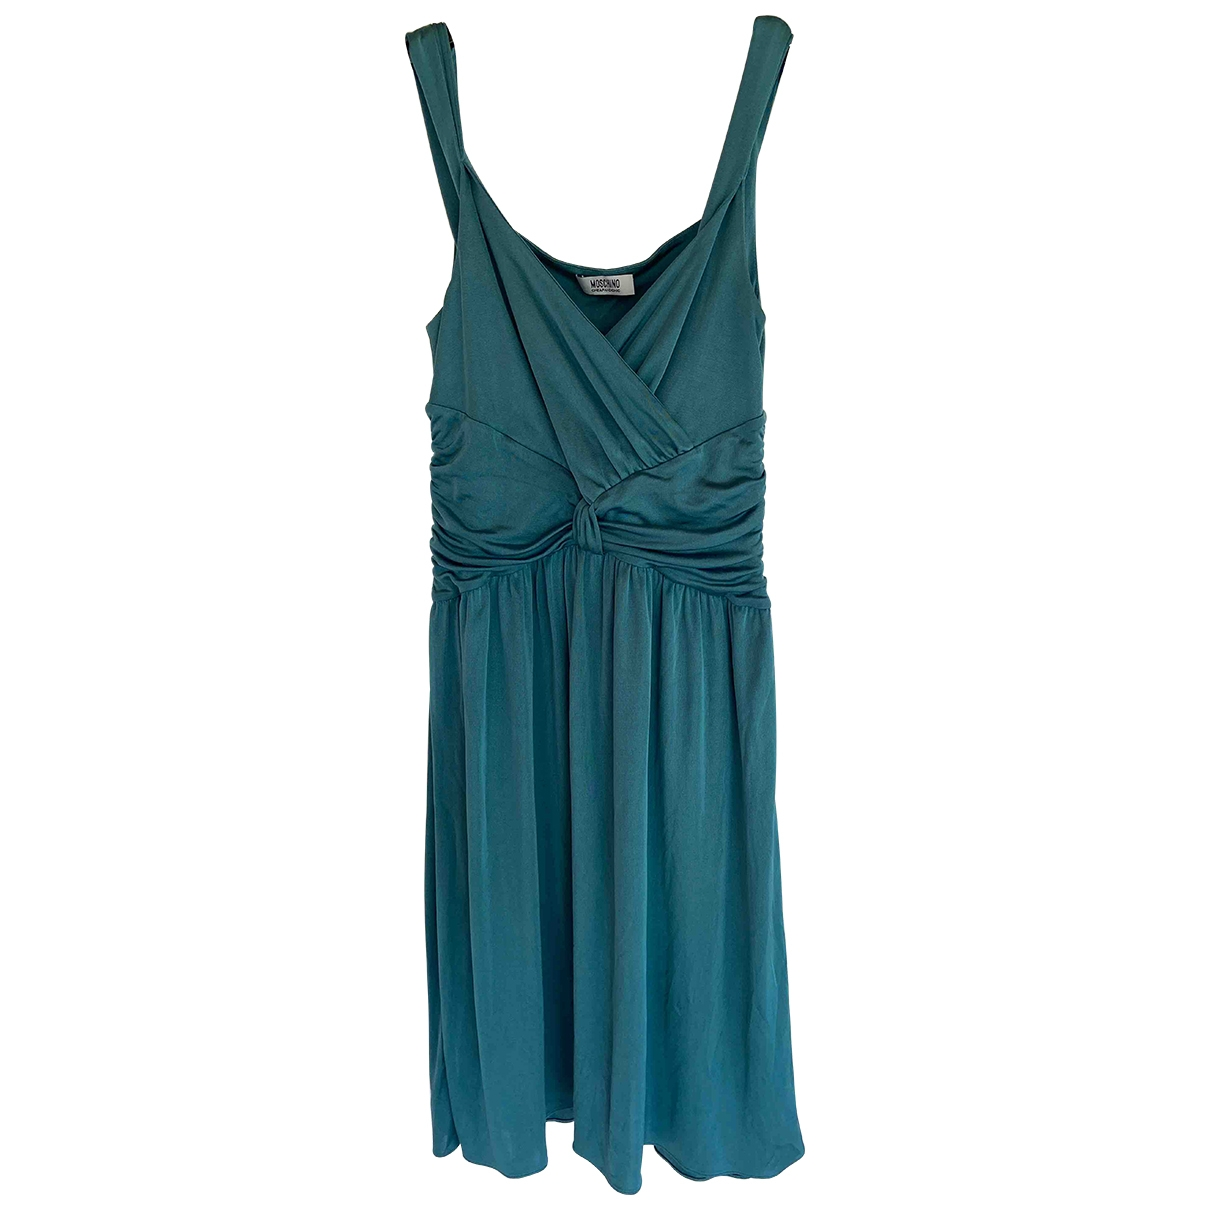 Moschino Cheap And Chic \N Turquoise Silk dress for Women 44 IT